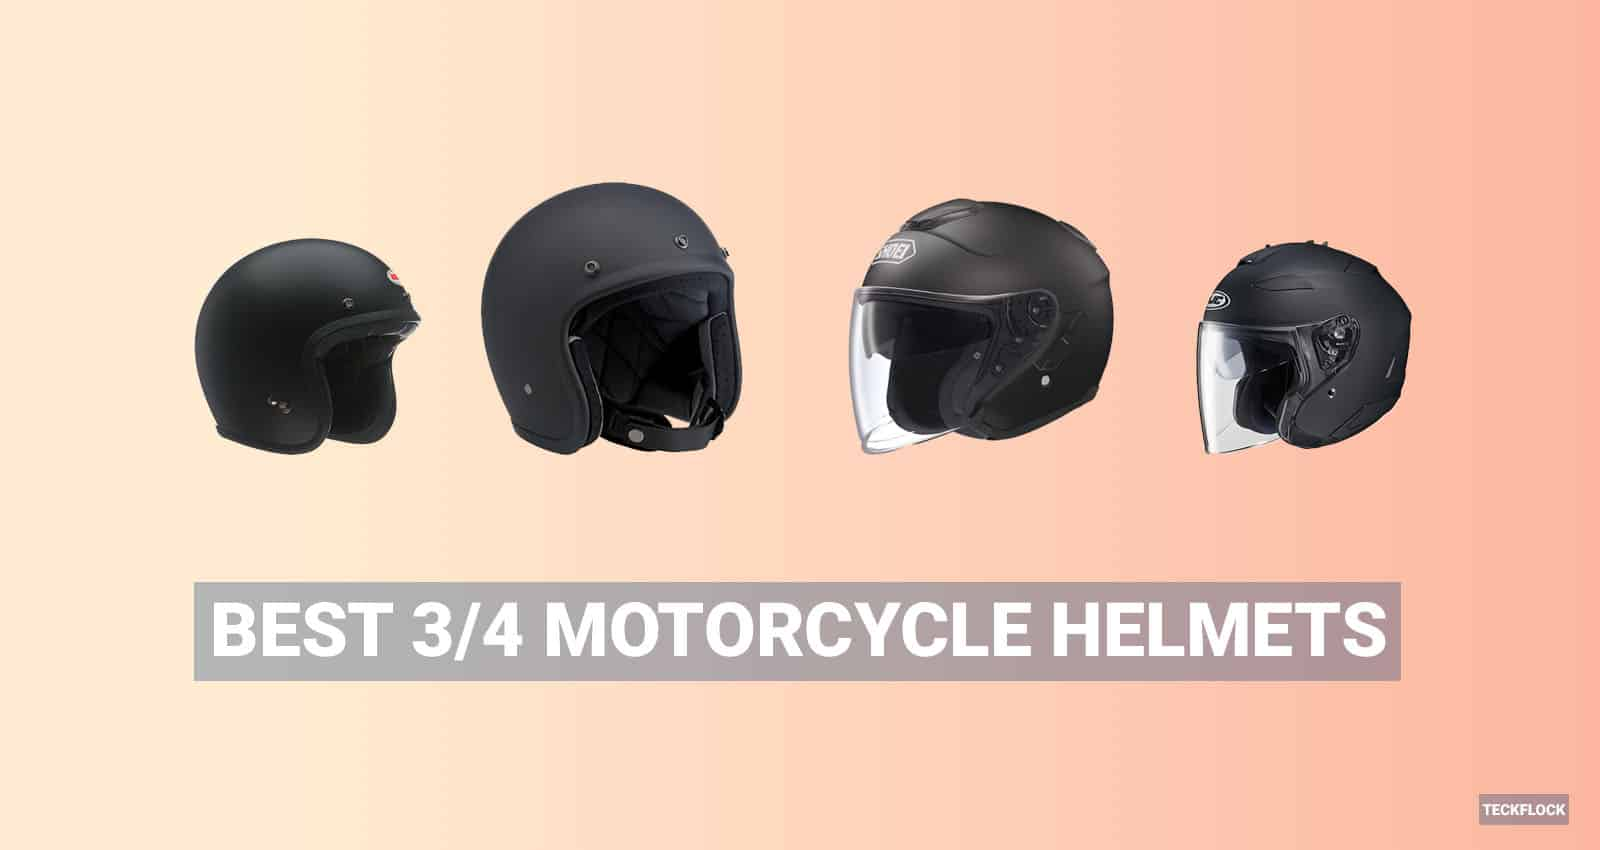 Best 3/4 Motorcycle Helmets